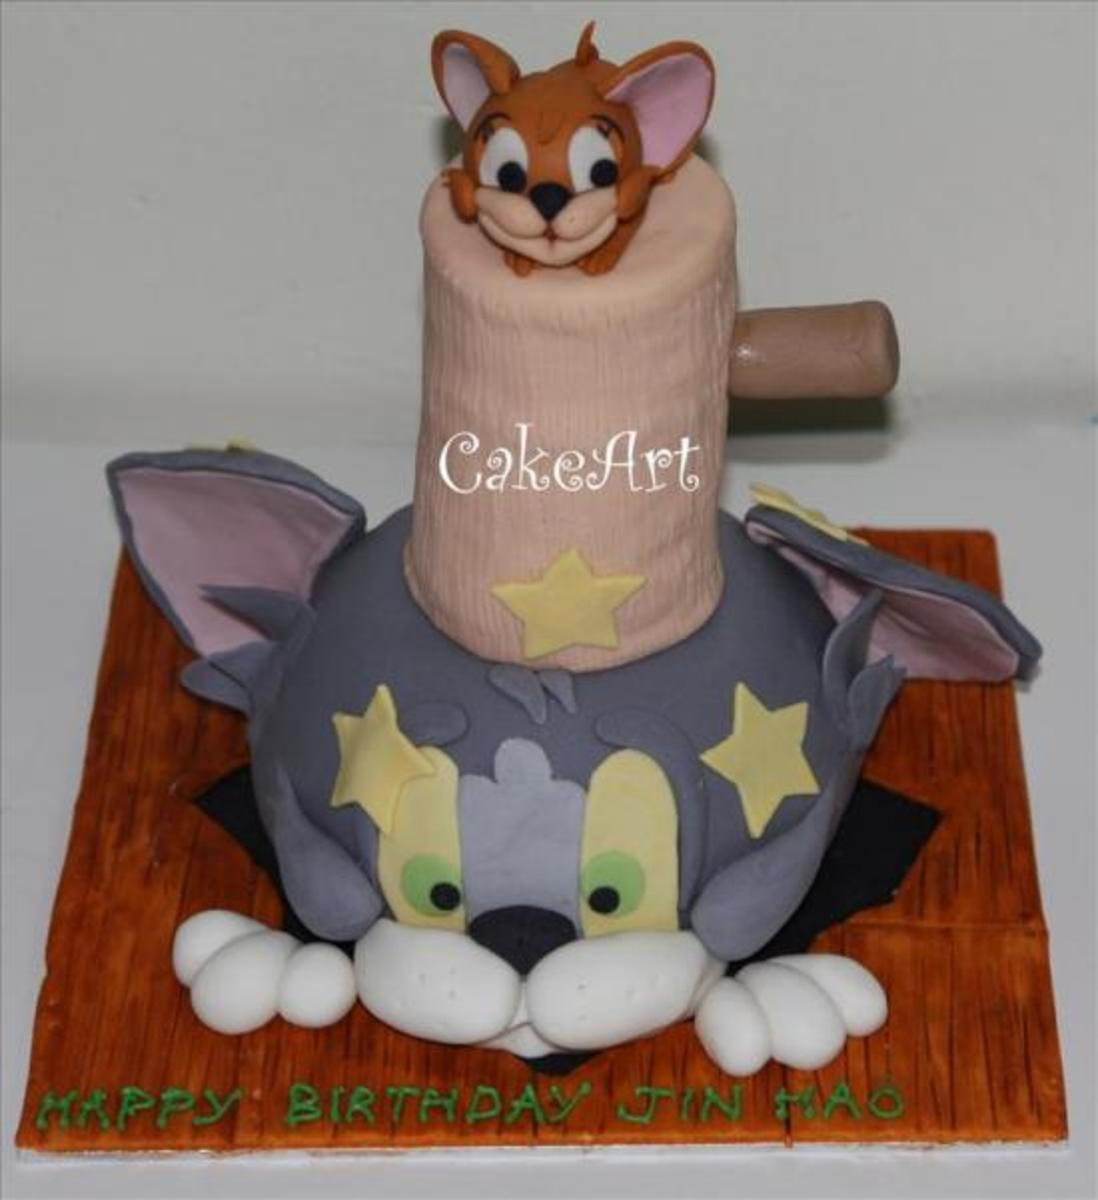 Another cake insipred by Debbie Brown collection. Looks yummy!